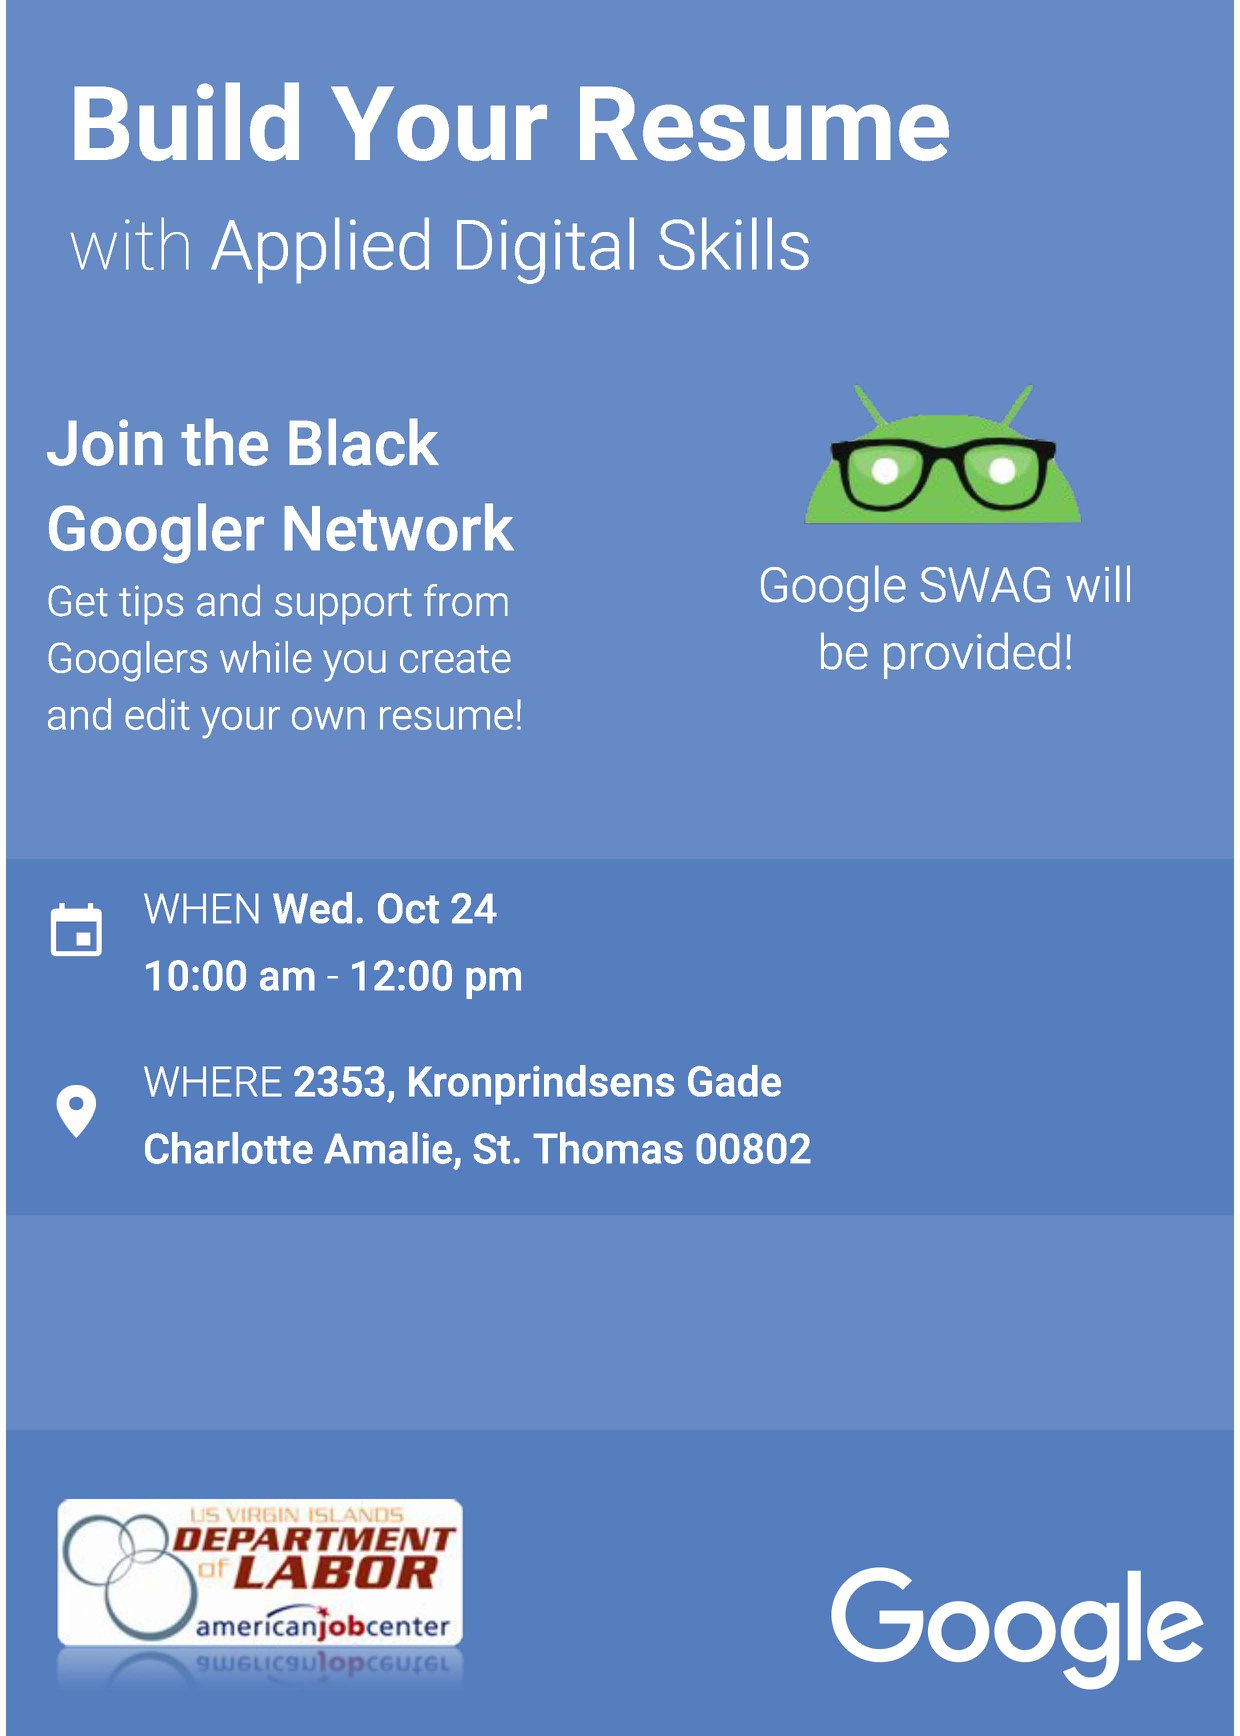 join google for a free resume workshop at the st  thomas